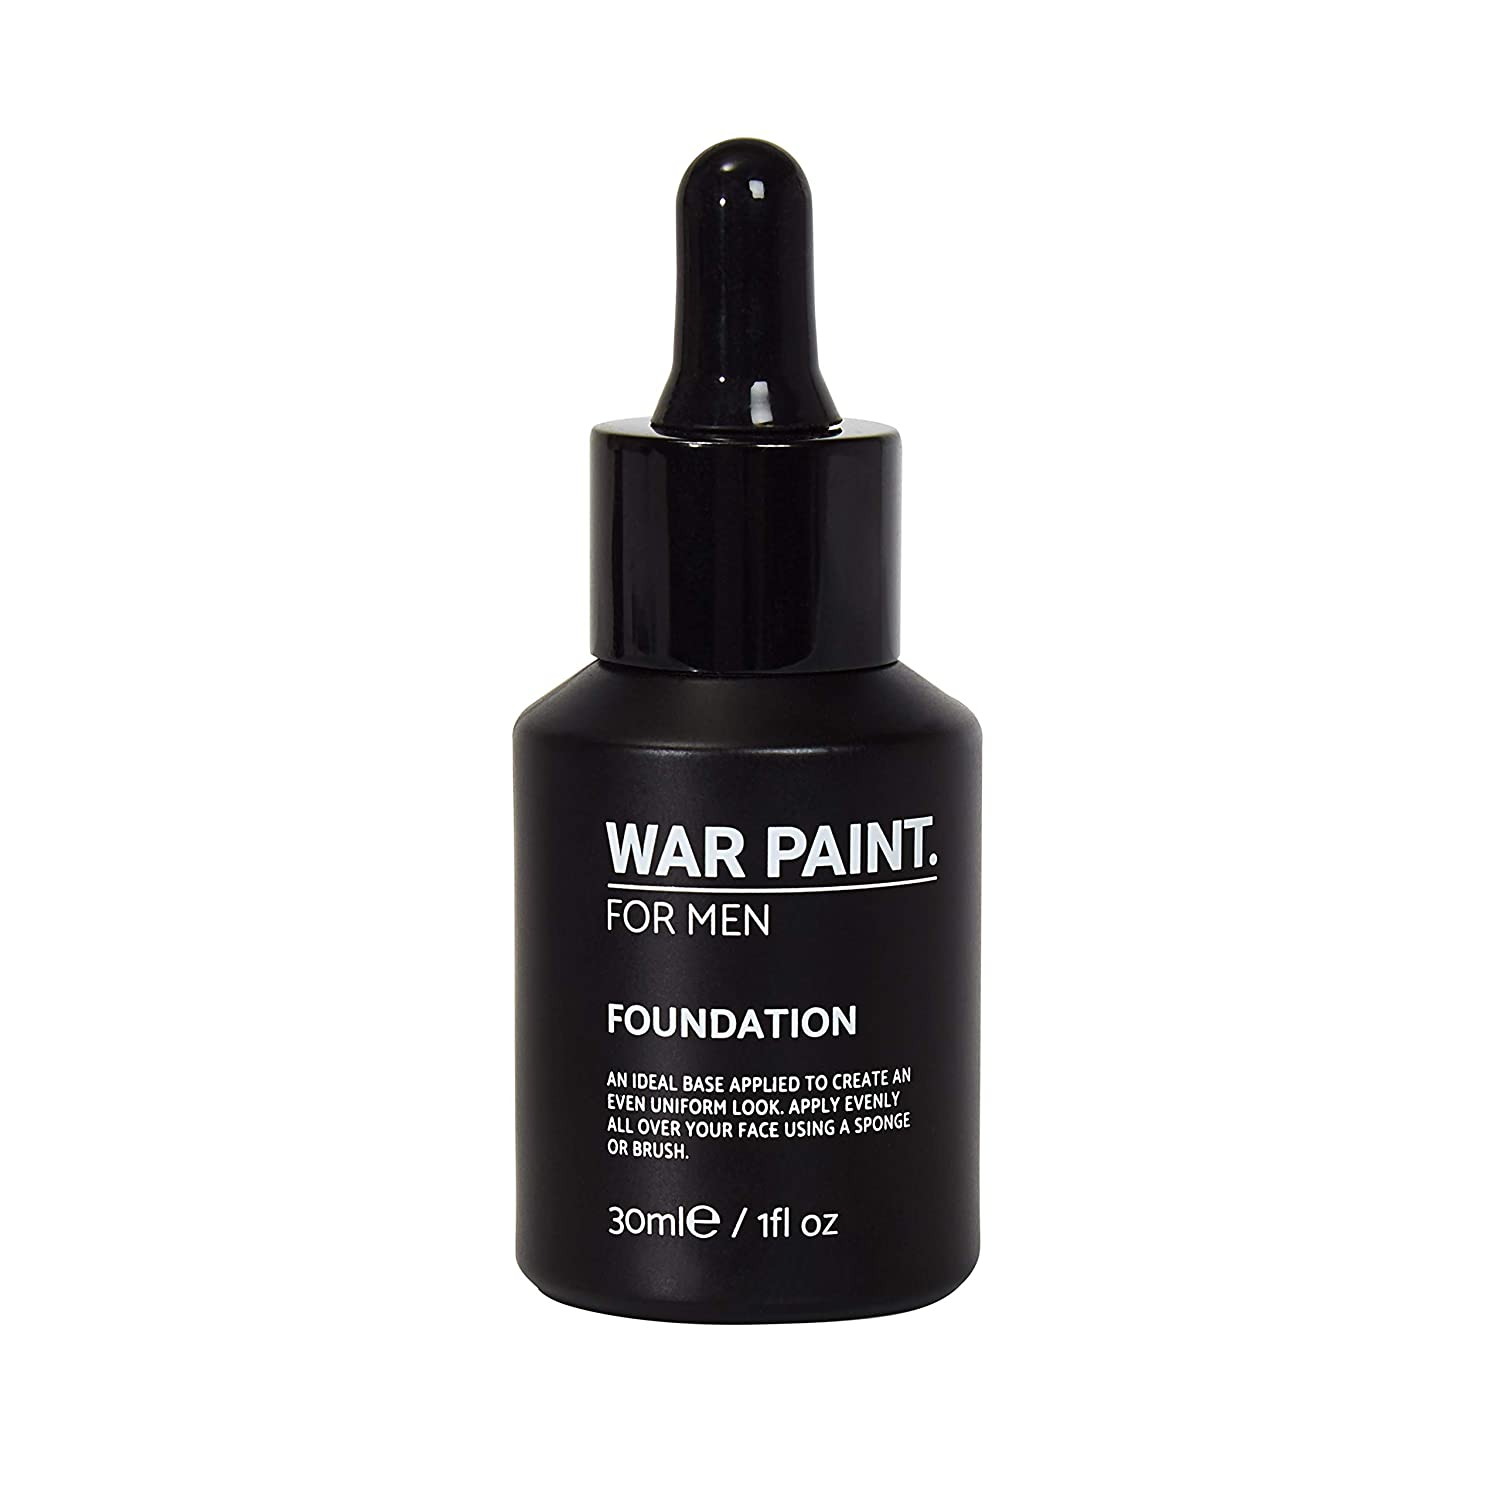 War Paint Mens Foundation (Fair) - 5 Shades available - Quality Vegan Ingredients, Cruelty Free Make-up - Full coverage Mens Make-up Products - Made in the UK